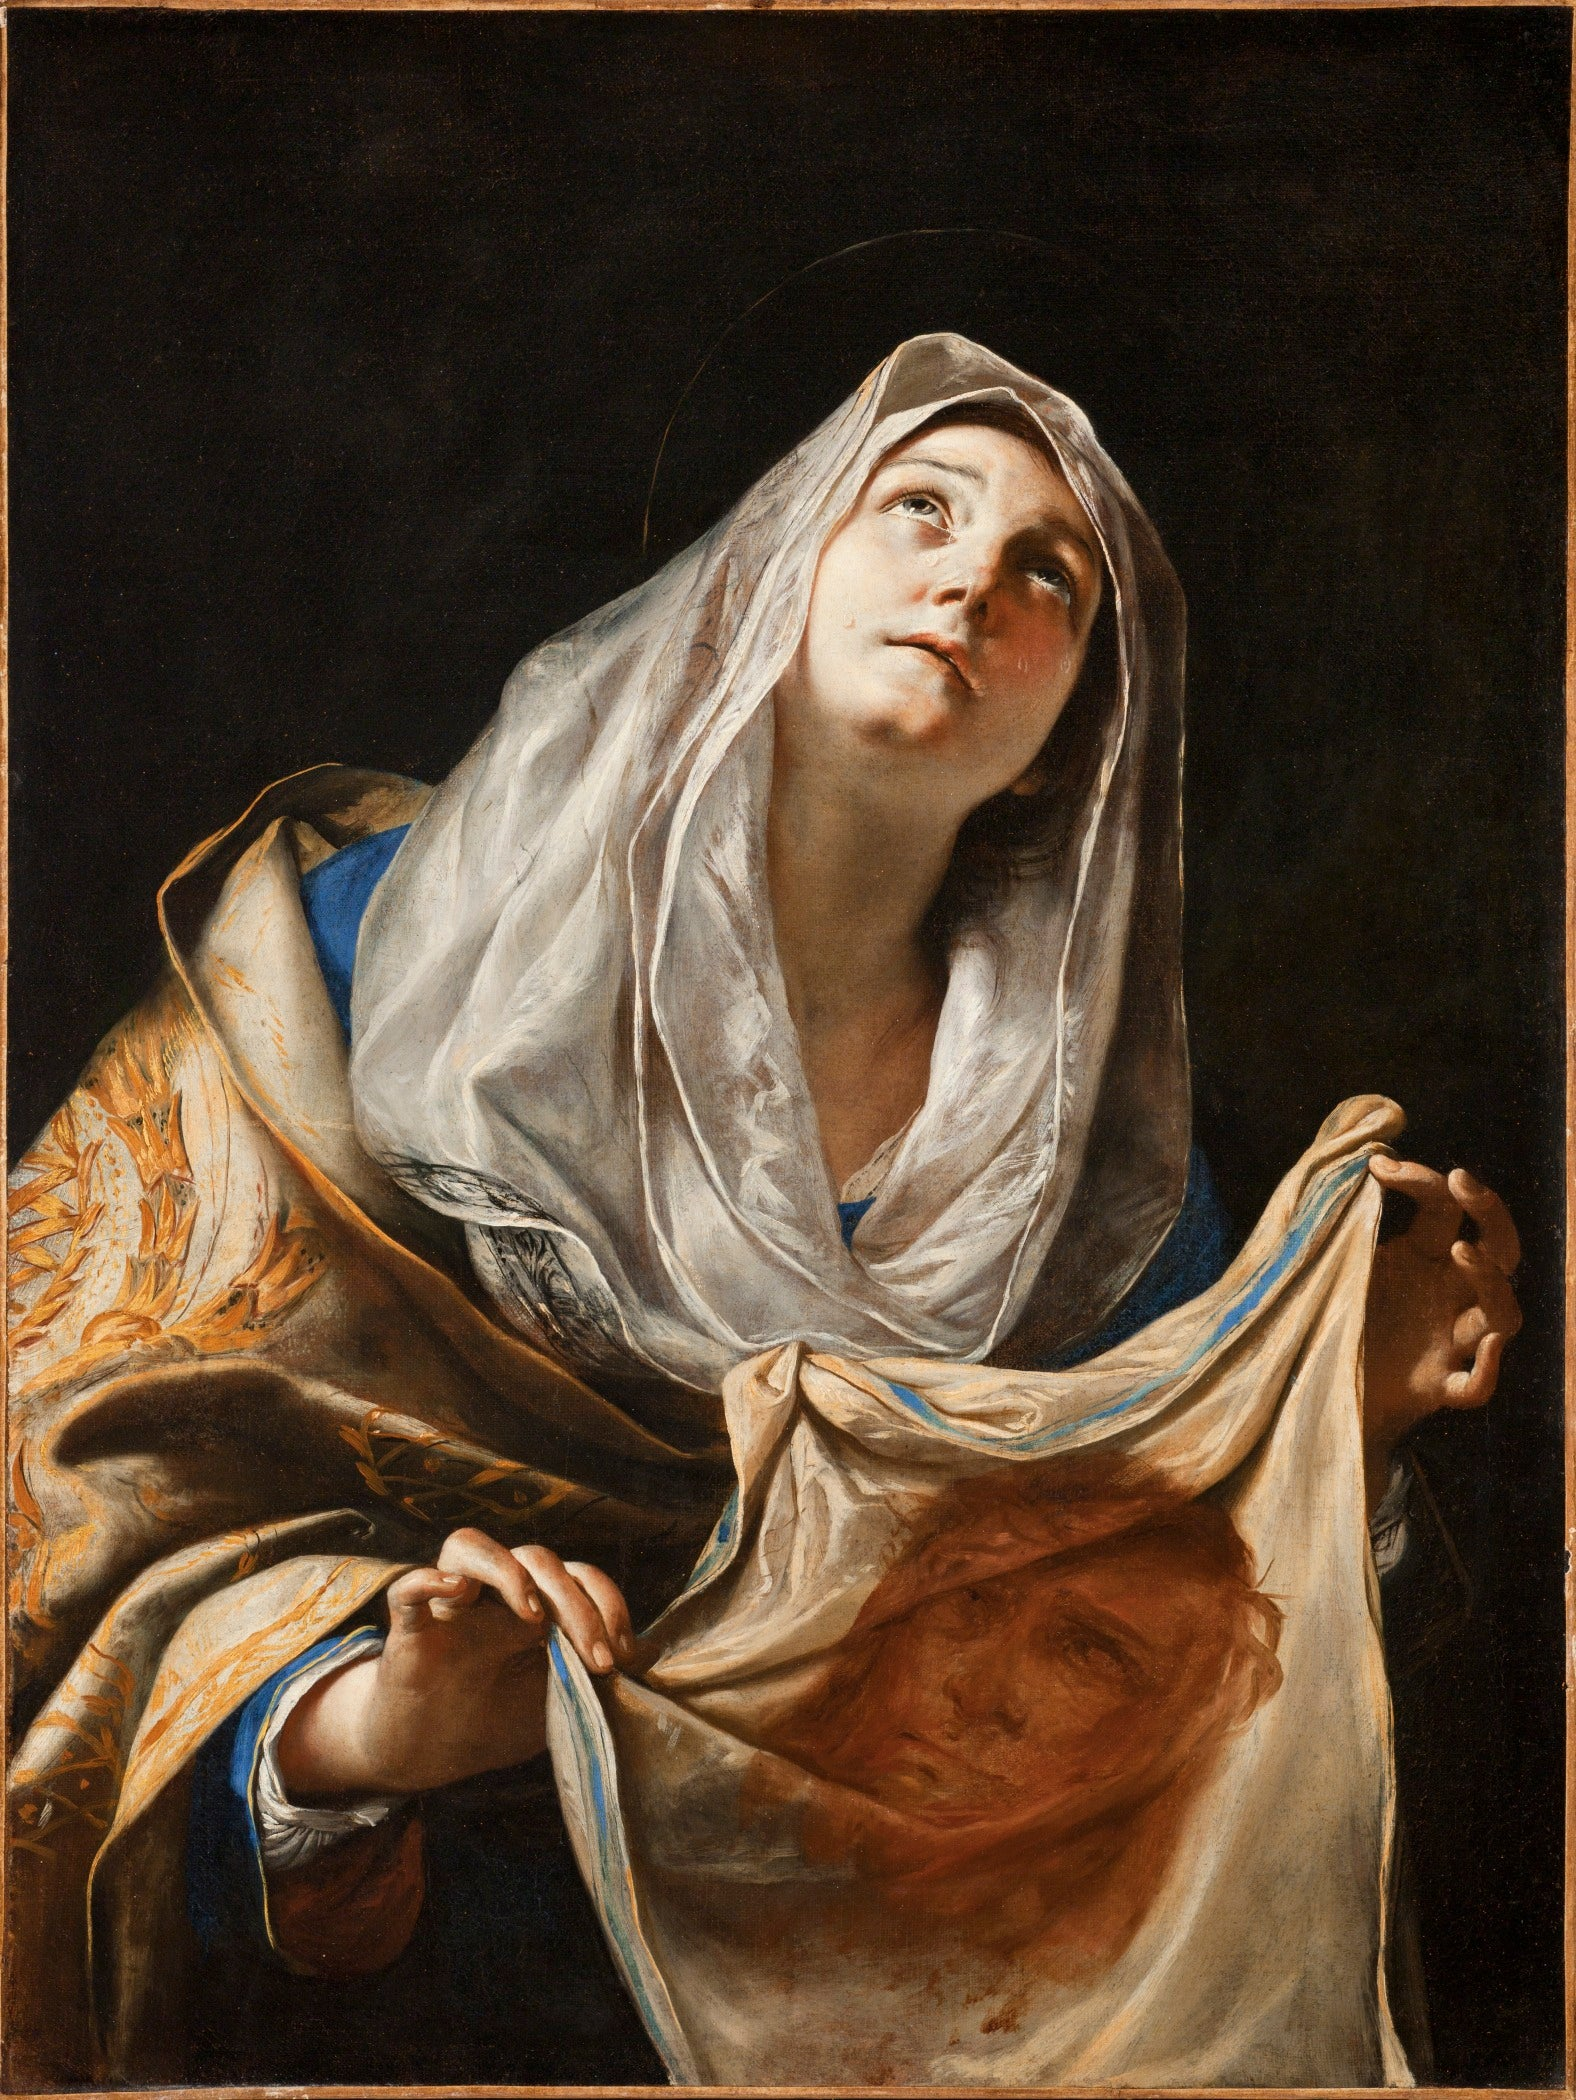 Saint Veronica - an example of Christian piety